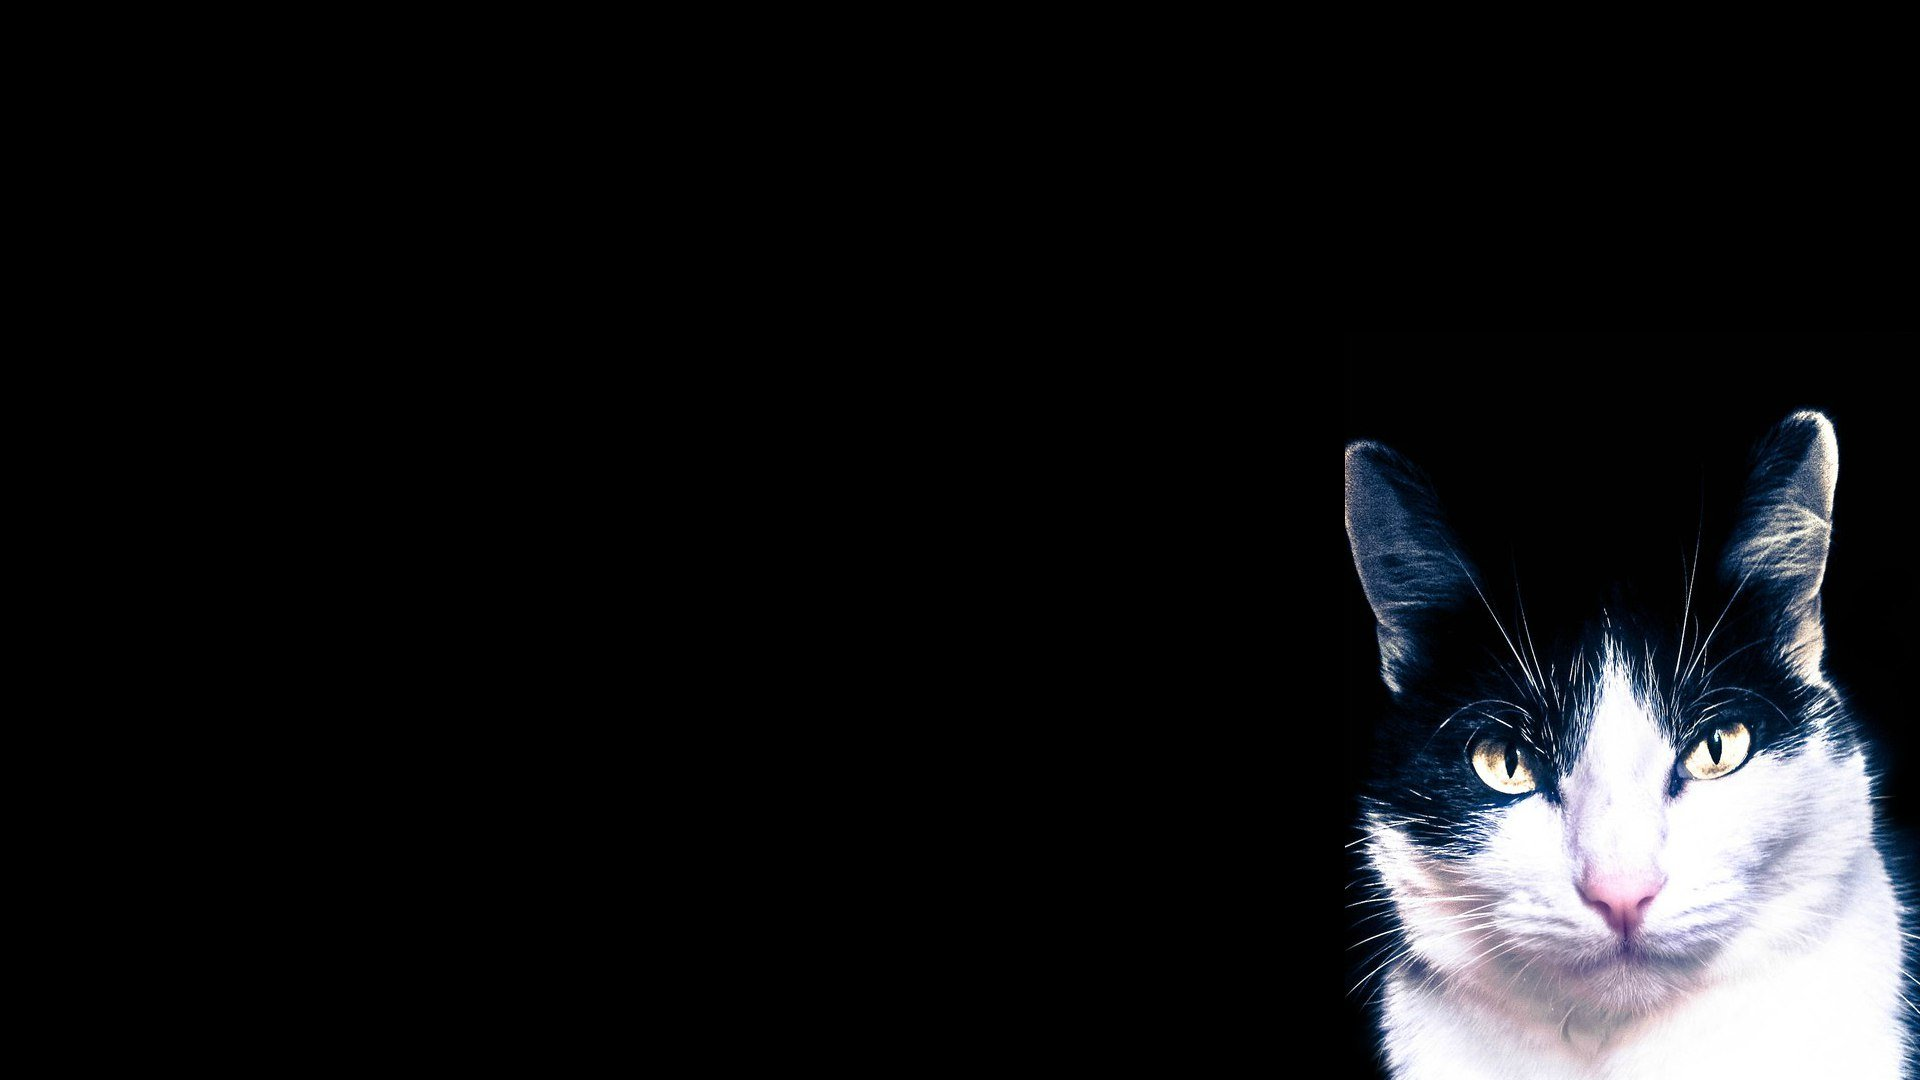 Took A Picture Of My Cat. Wallpaper